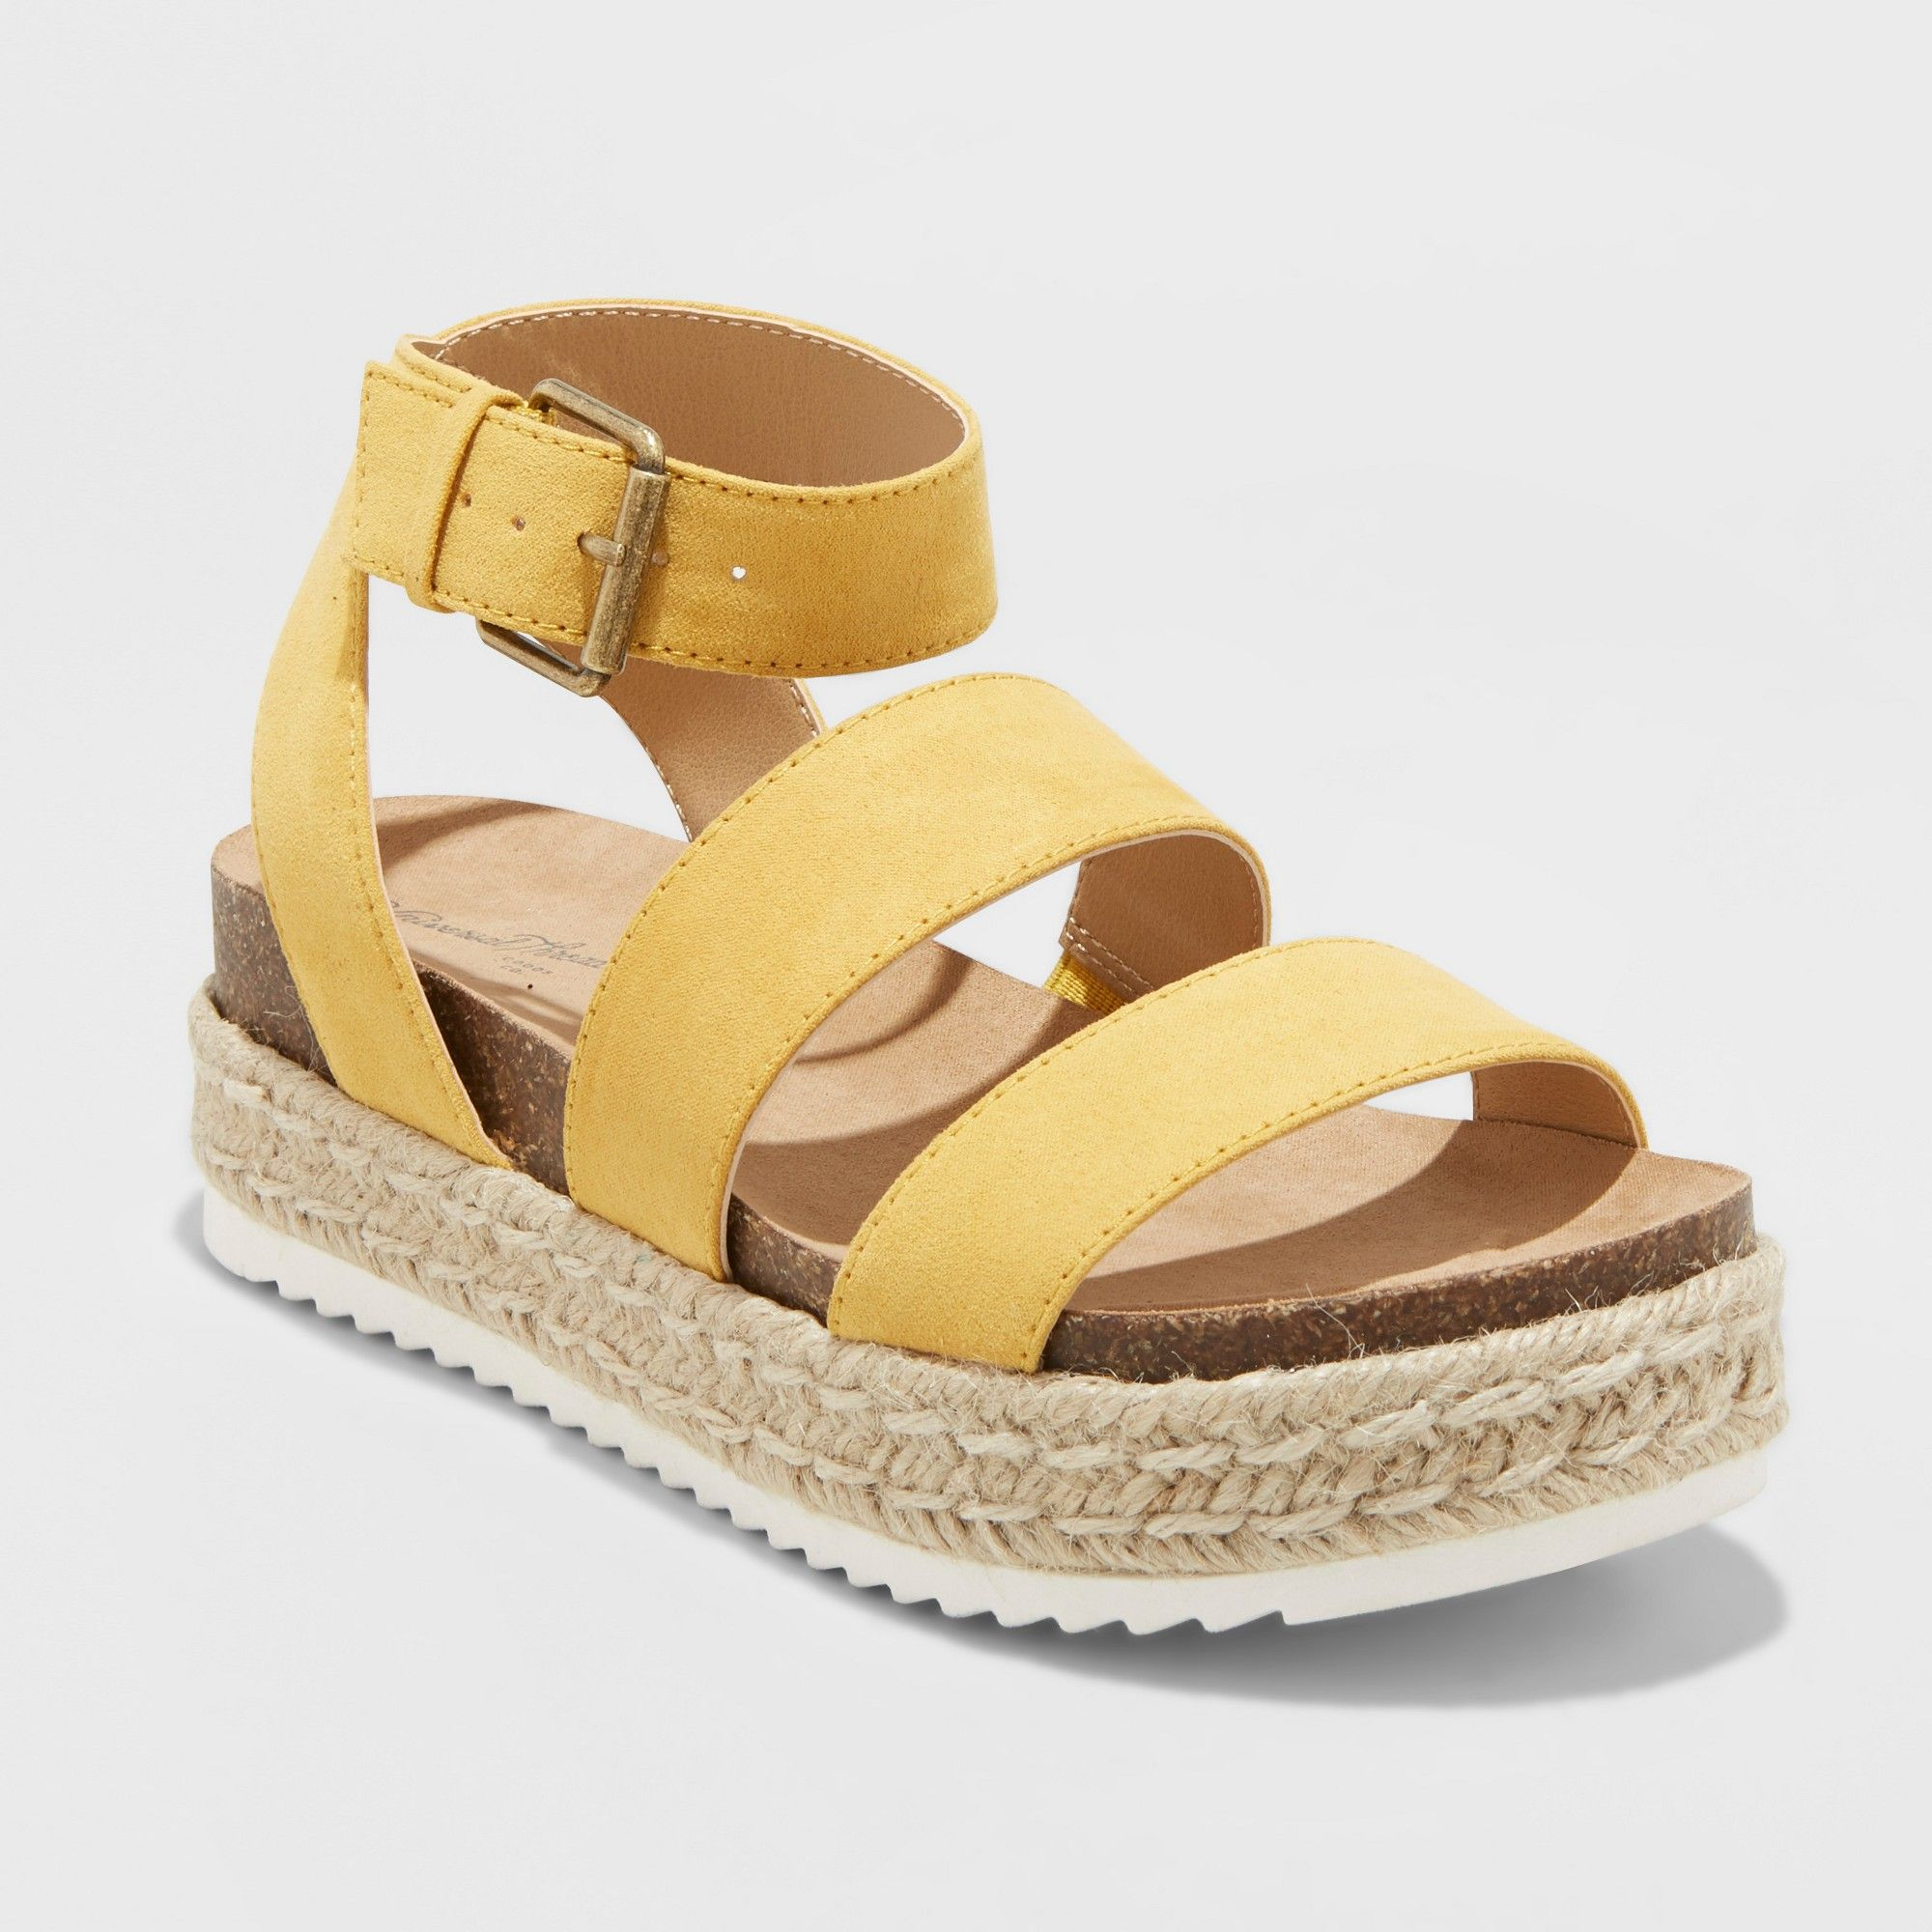 652b845d154 Women s Agnes Wide Width Espadrille Sandals - Universal Thread Yellow 6.5W